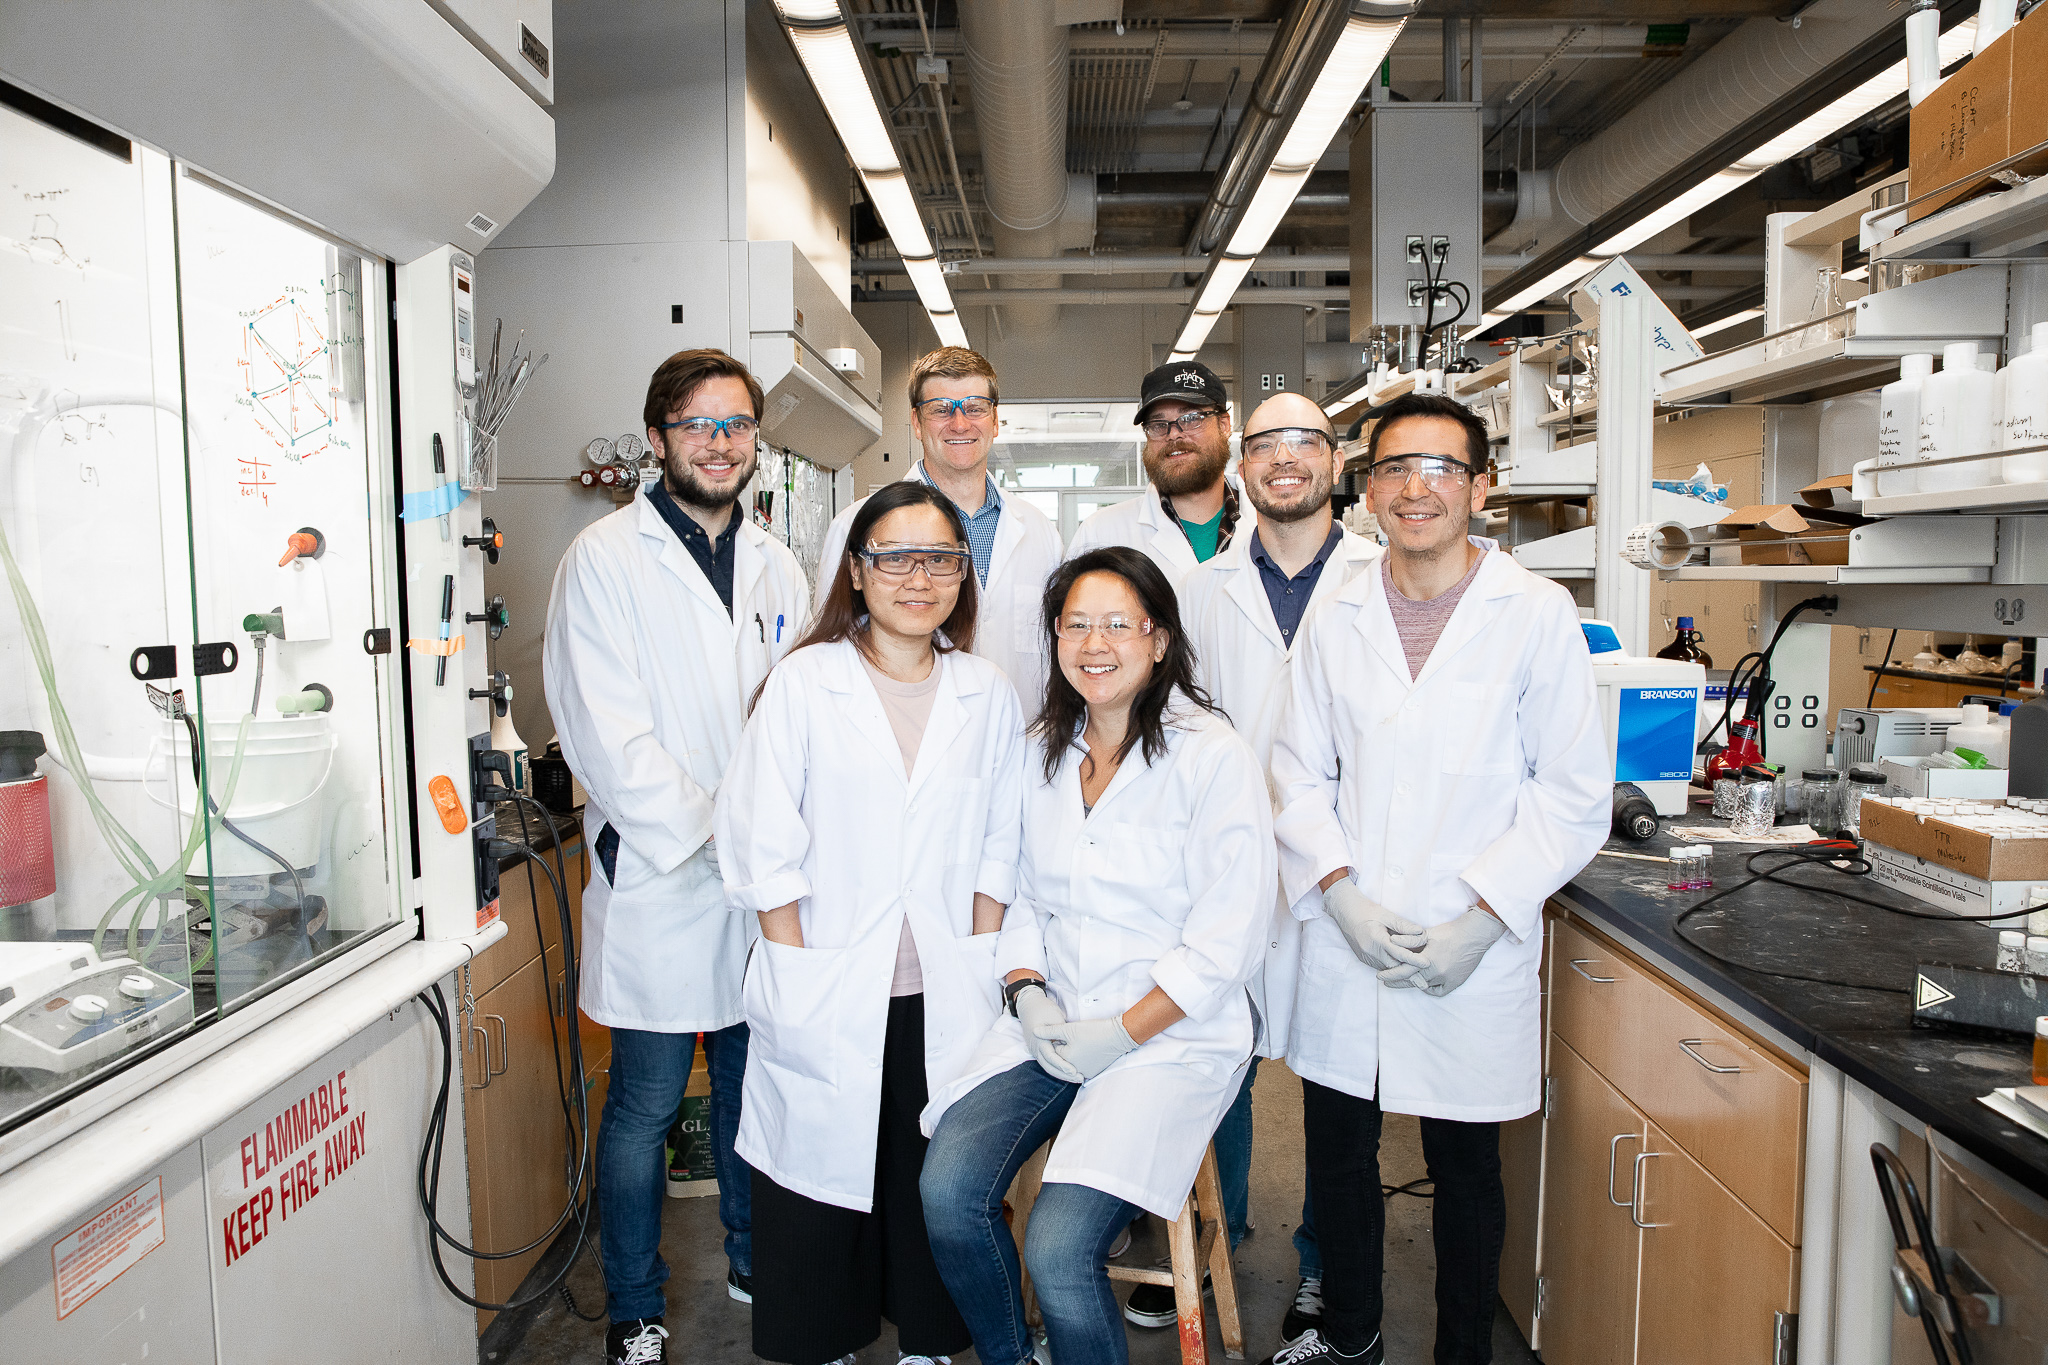 Dr. VanVeller and his team of research students pose in the lab